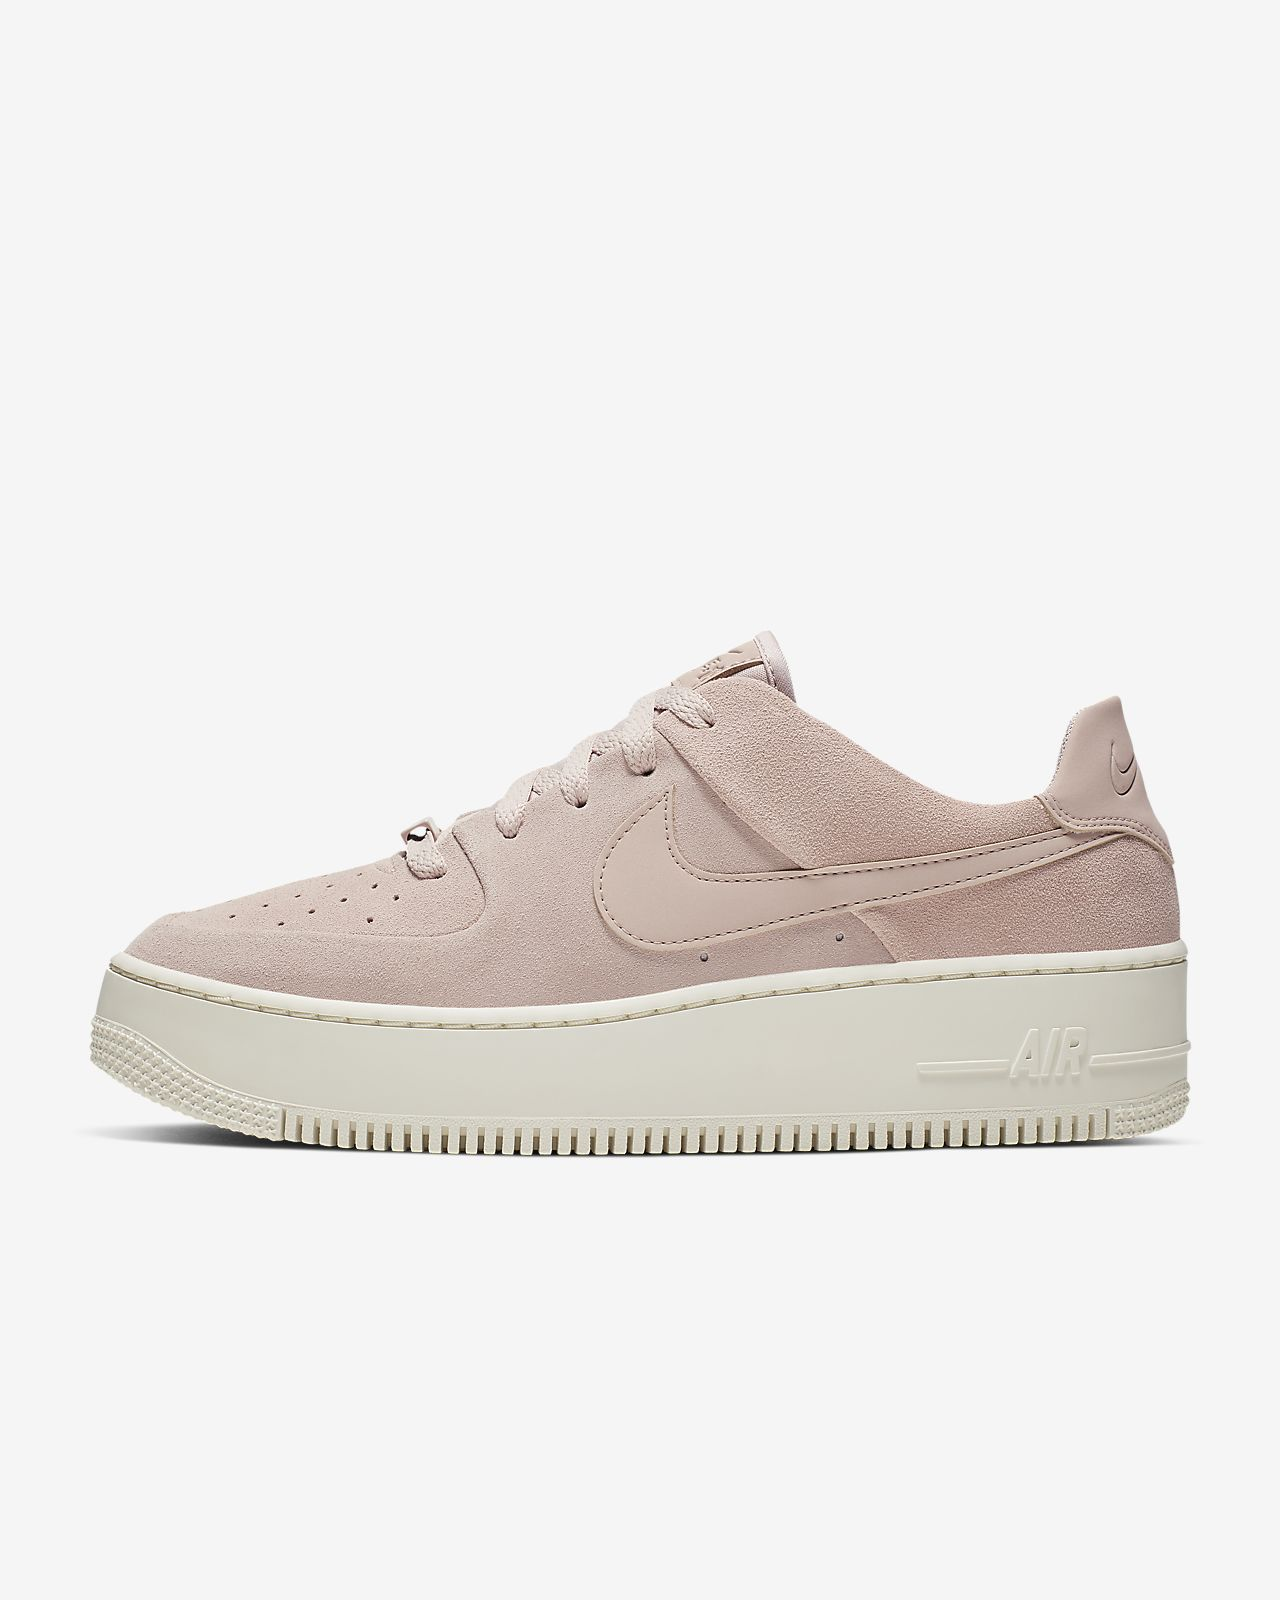 Nike Air Force 1 Sage Low Women s Shoe. Nike.com CA a401b53d7c24f